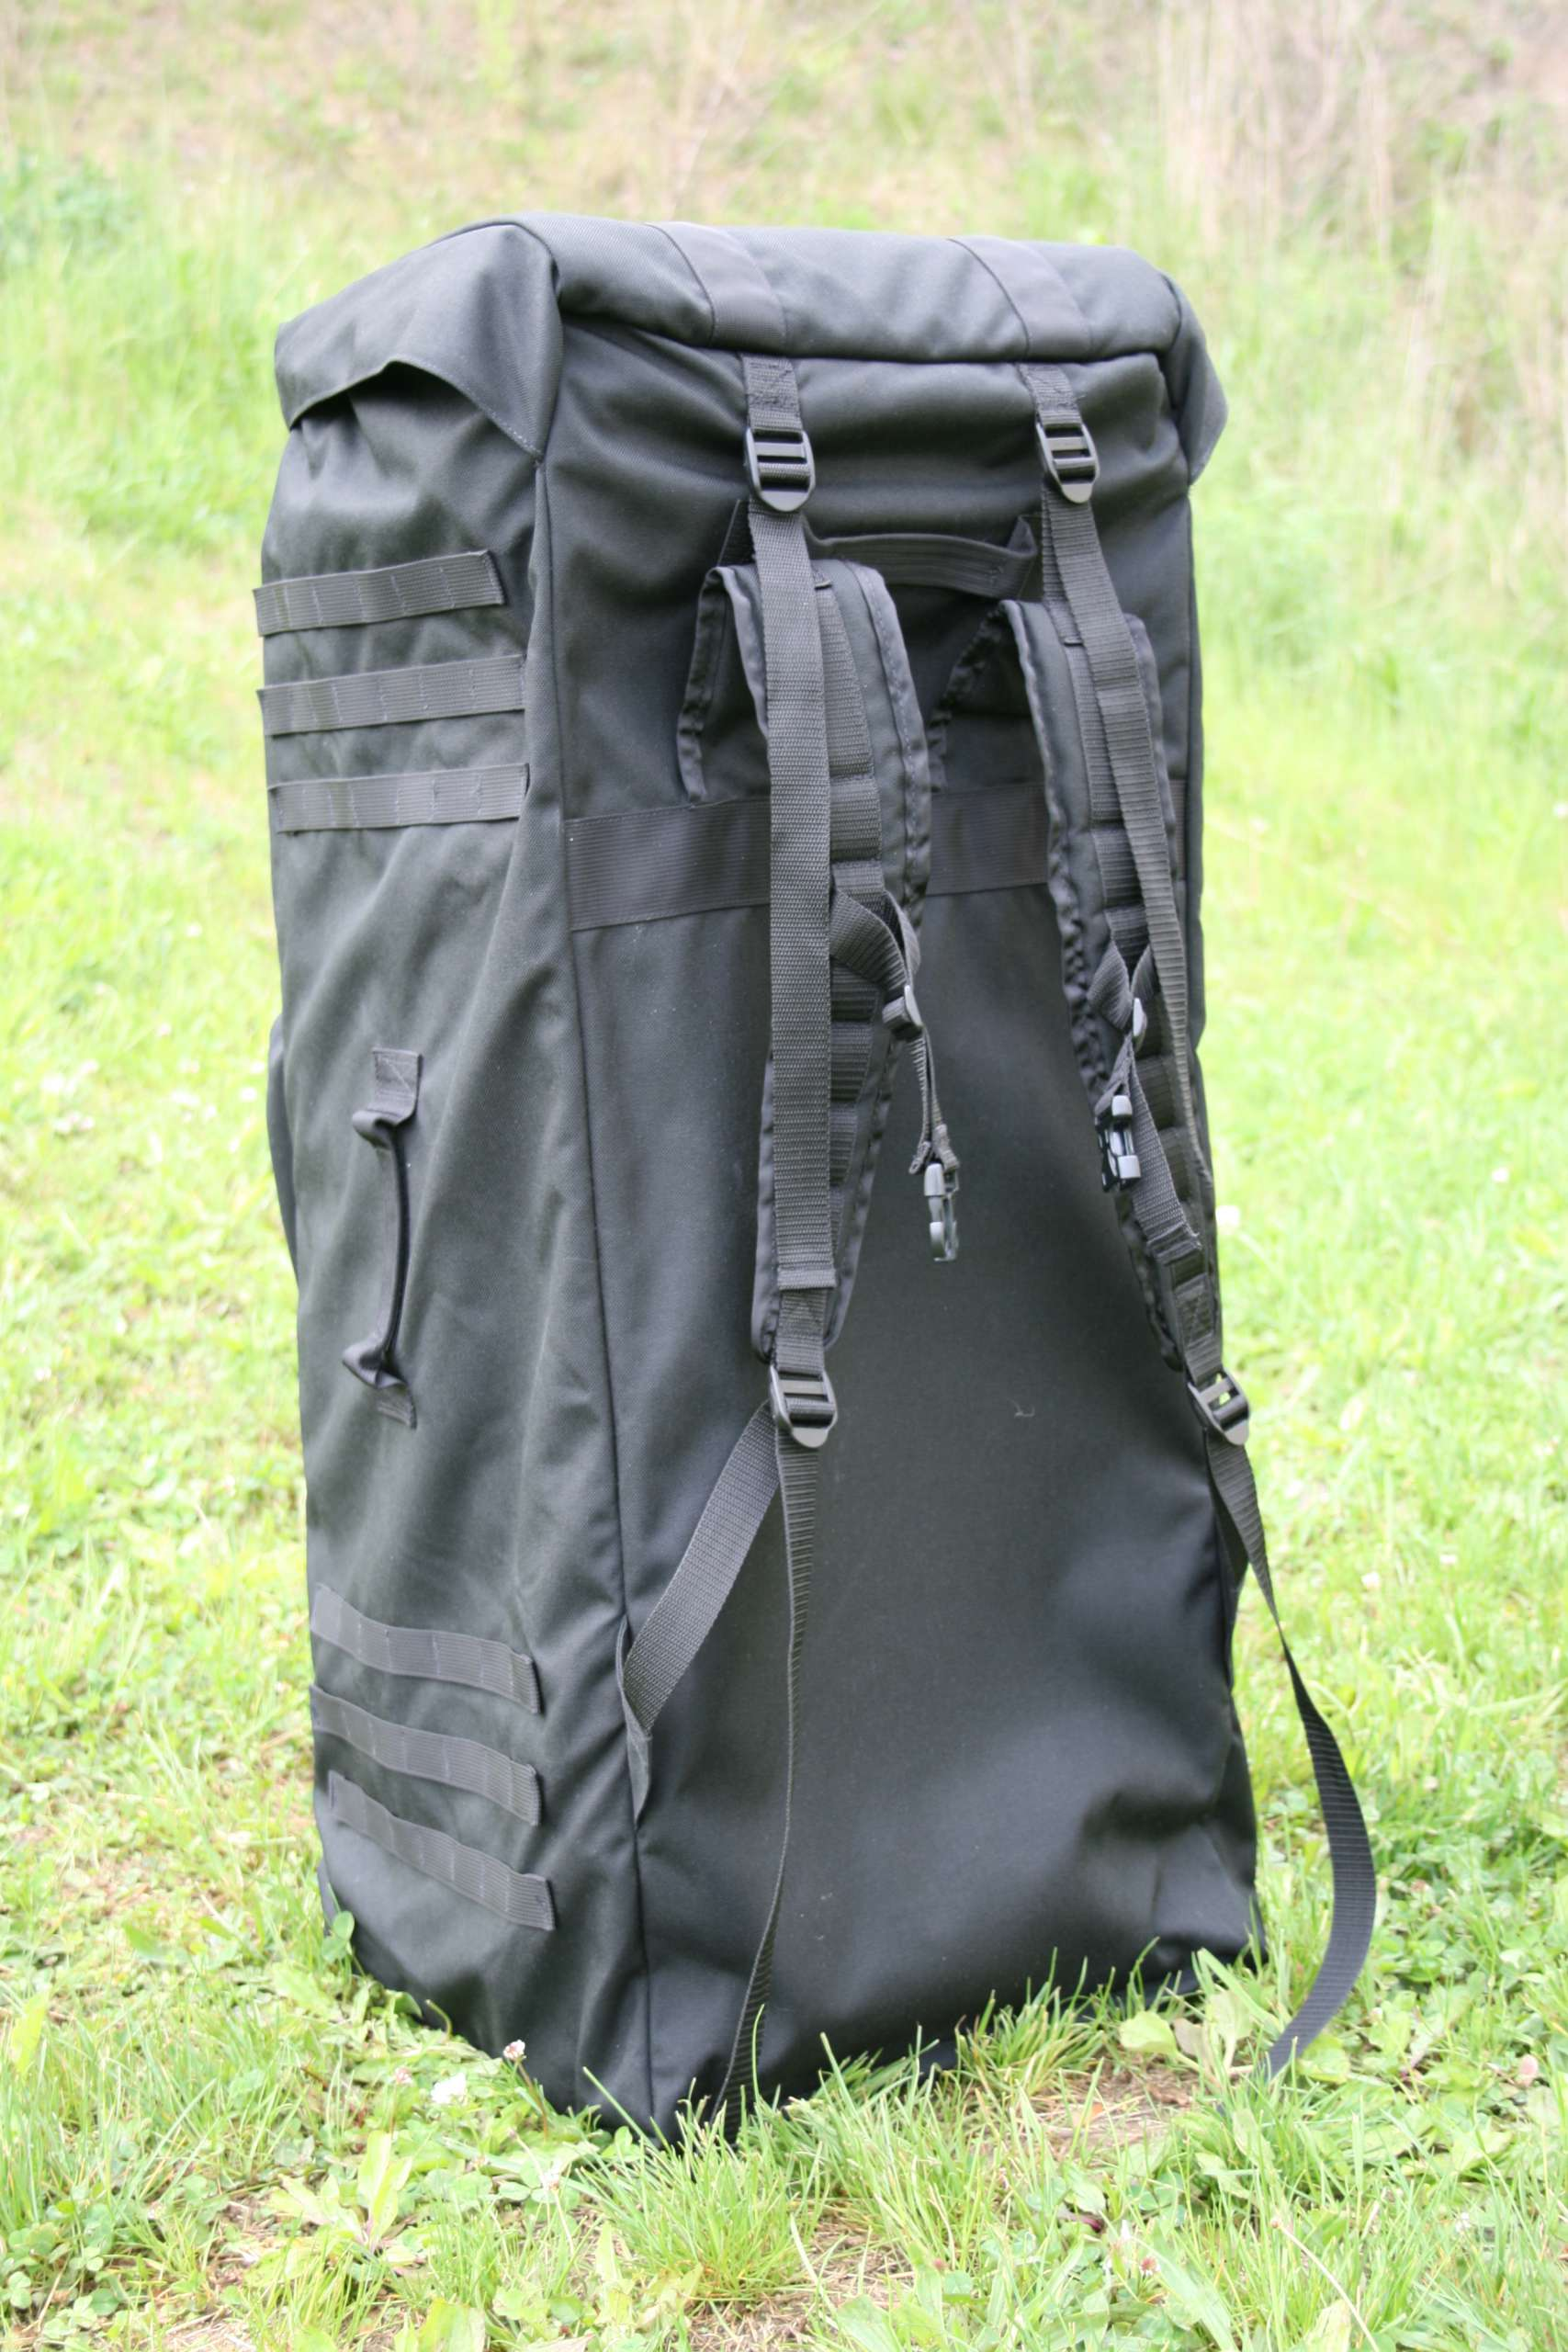 Ladder Backpack Bag